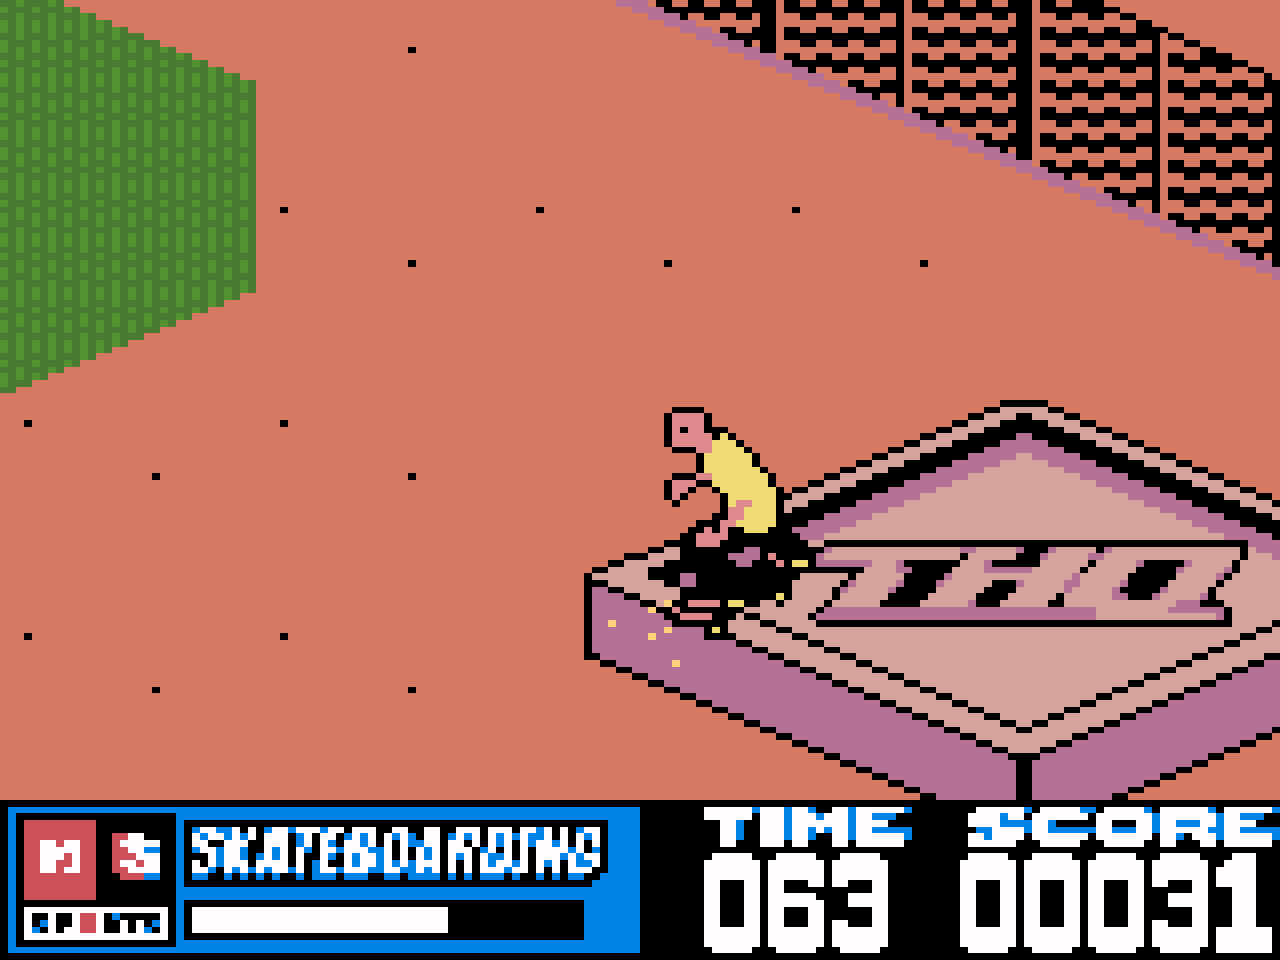 https://s3.eu-west-3.amazonaws.com/games.anthony-dessalles.com/MTV Sports Skateboarding featuring Andy MacDonald GBC 2020 - Screenshots/MTV Sports Skateboarding featuring Andy MacDonald-201115-140753.png